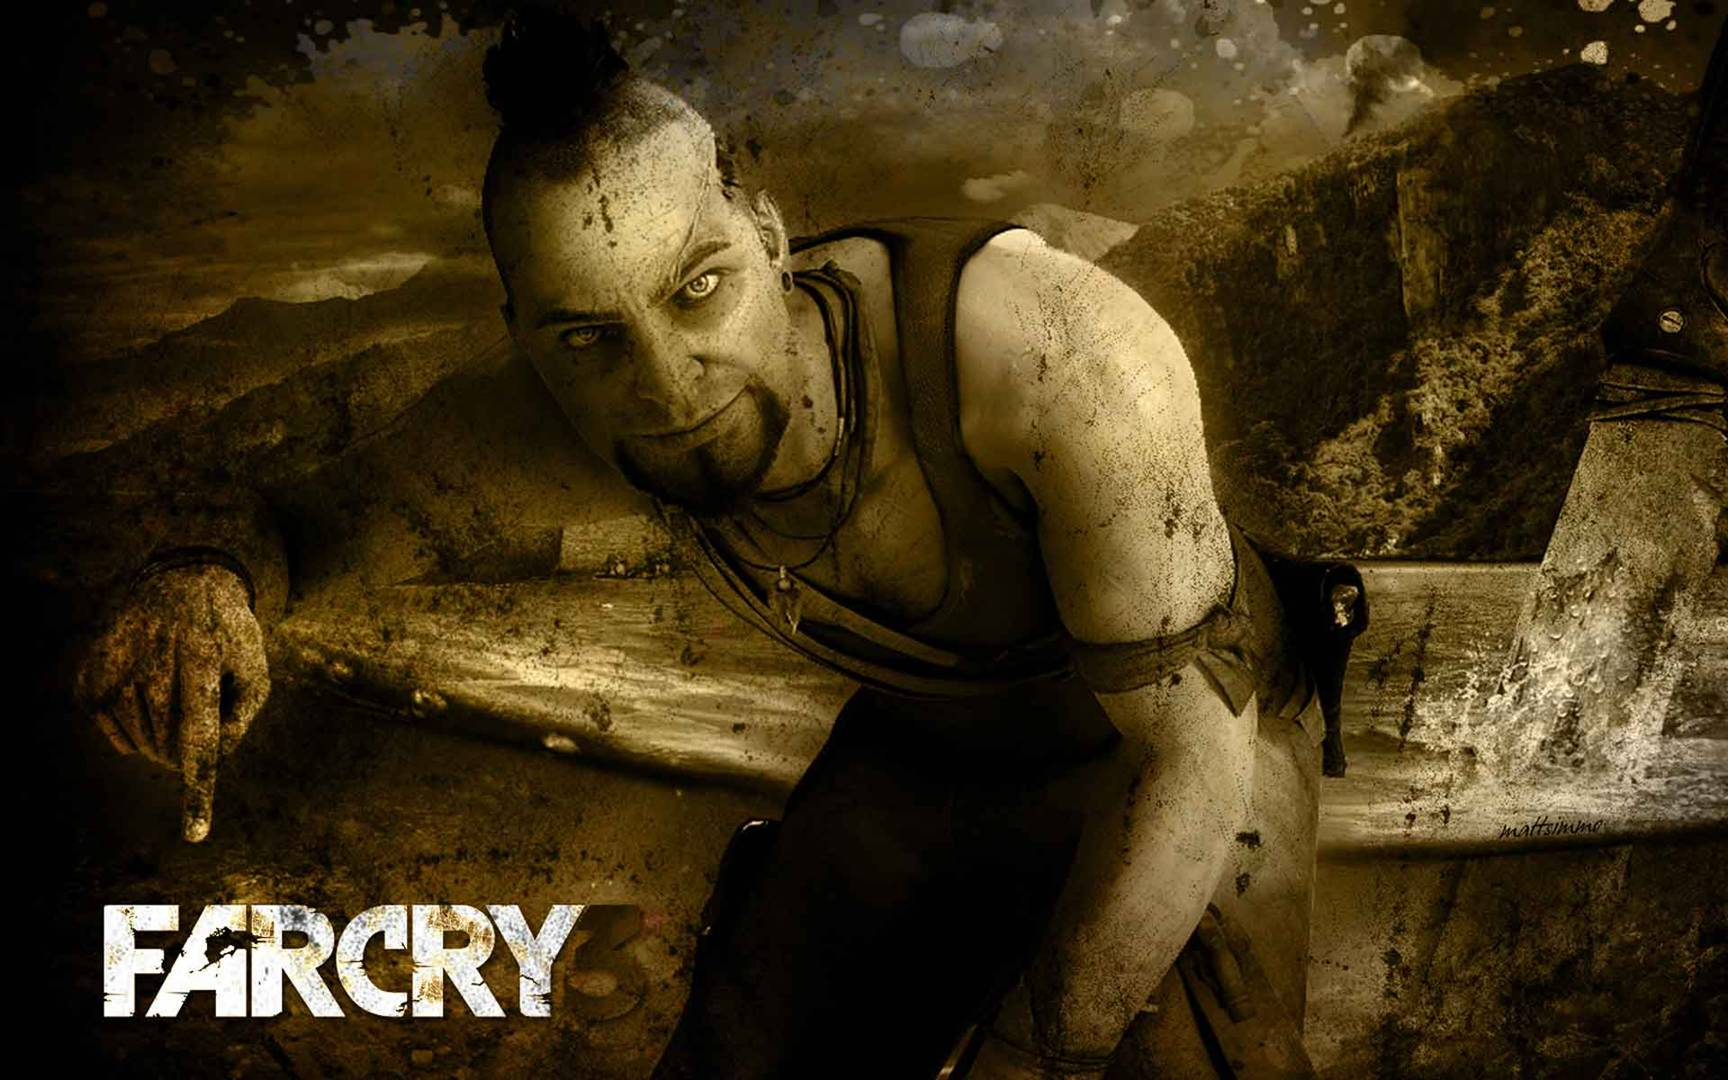 Far Cry 3 Wallpapers In 1080p Hd Page 3